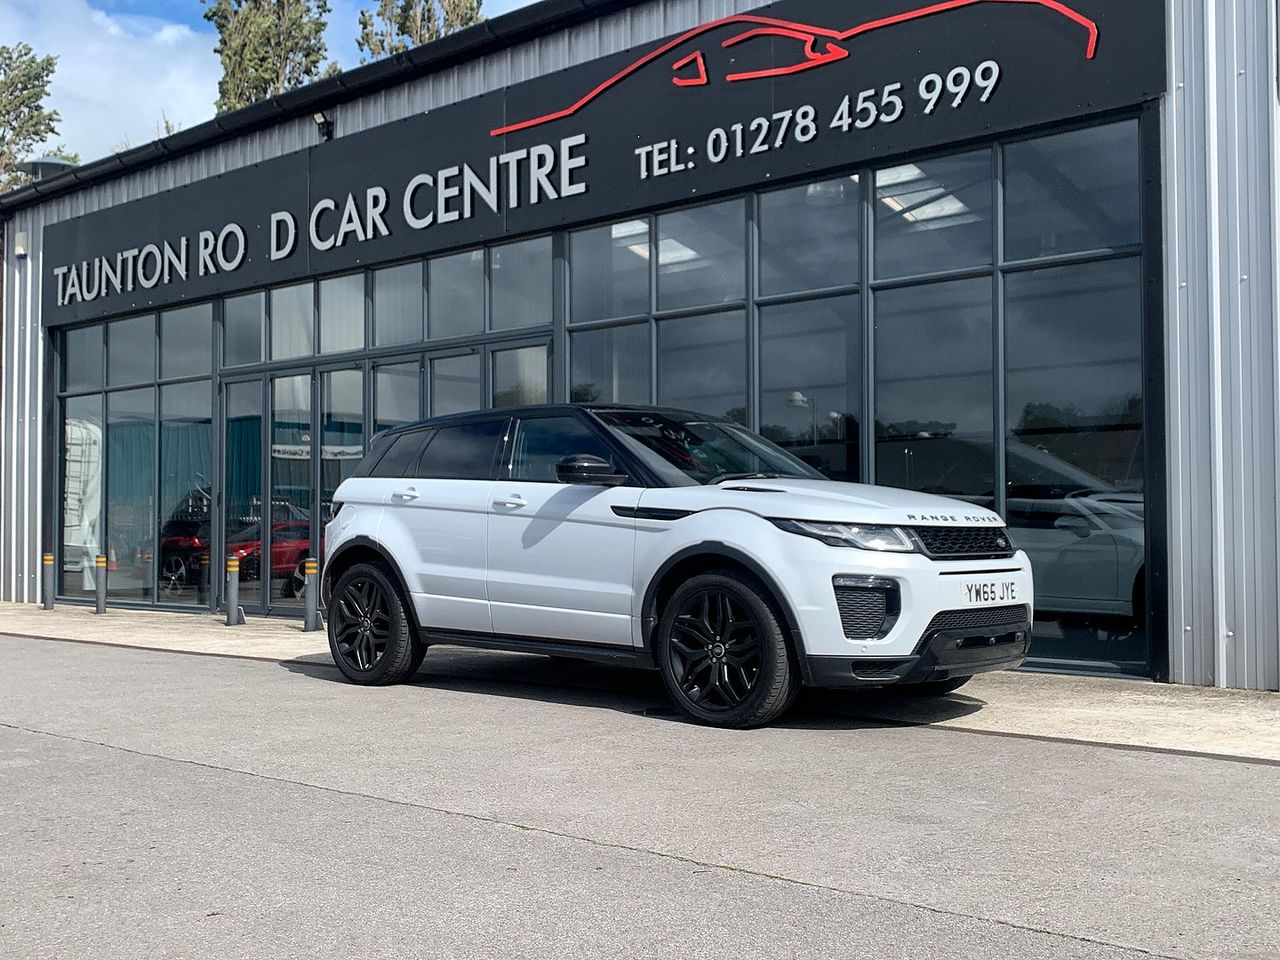 2015 LAND ROVER Range Rover Evoque Td4 180hp HSE Dynamic 9Sp Auto 4WD - Picture 1 of 11